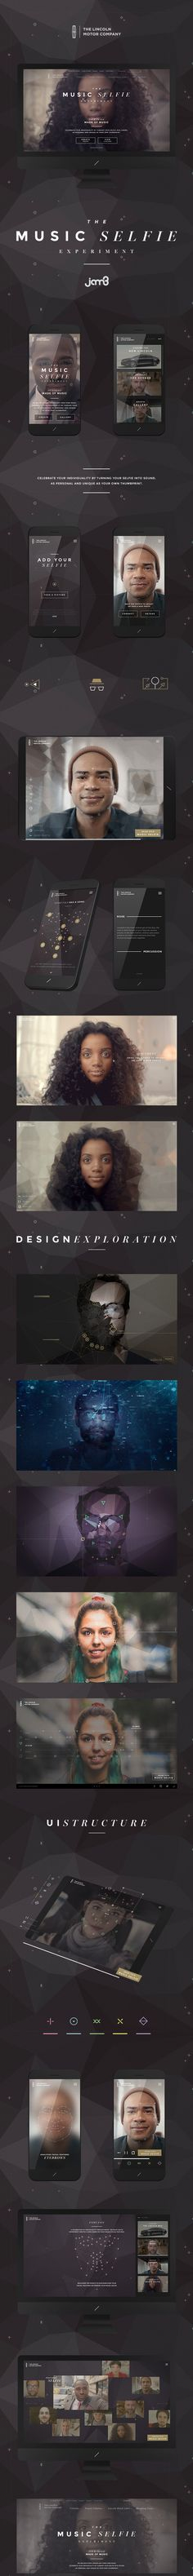 web design | Lincoln Motor — The Music Selfie Experiment || Weekly web design Inspiration for everyone! Introducing Moire Studios a thriving website and graphic design studio. Feel Free to Follow us @moirestudiosjkt to see more remarkable pins like this. Or visit our website www.moirestudiosjkt.com to learn more about us. #WebDesign #WebsiteInspiration #WebDesignInspiration ||